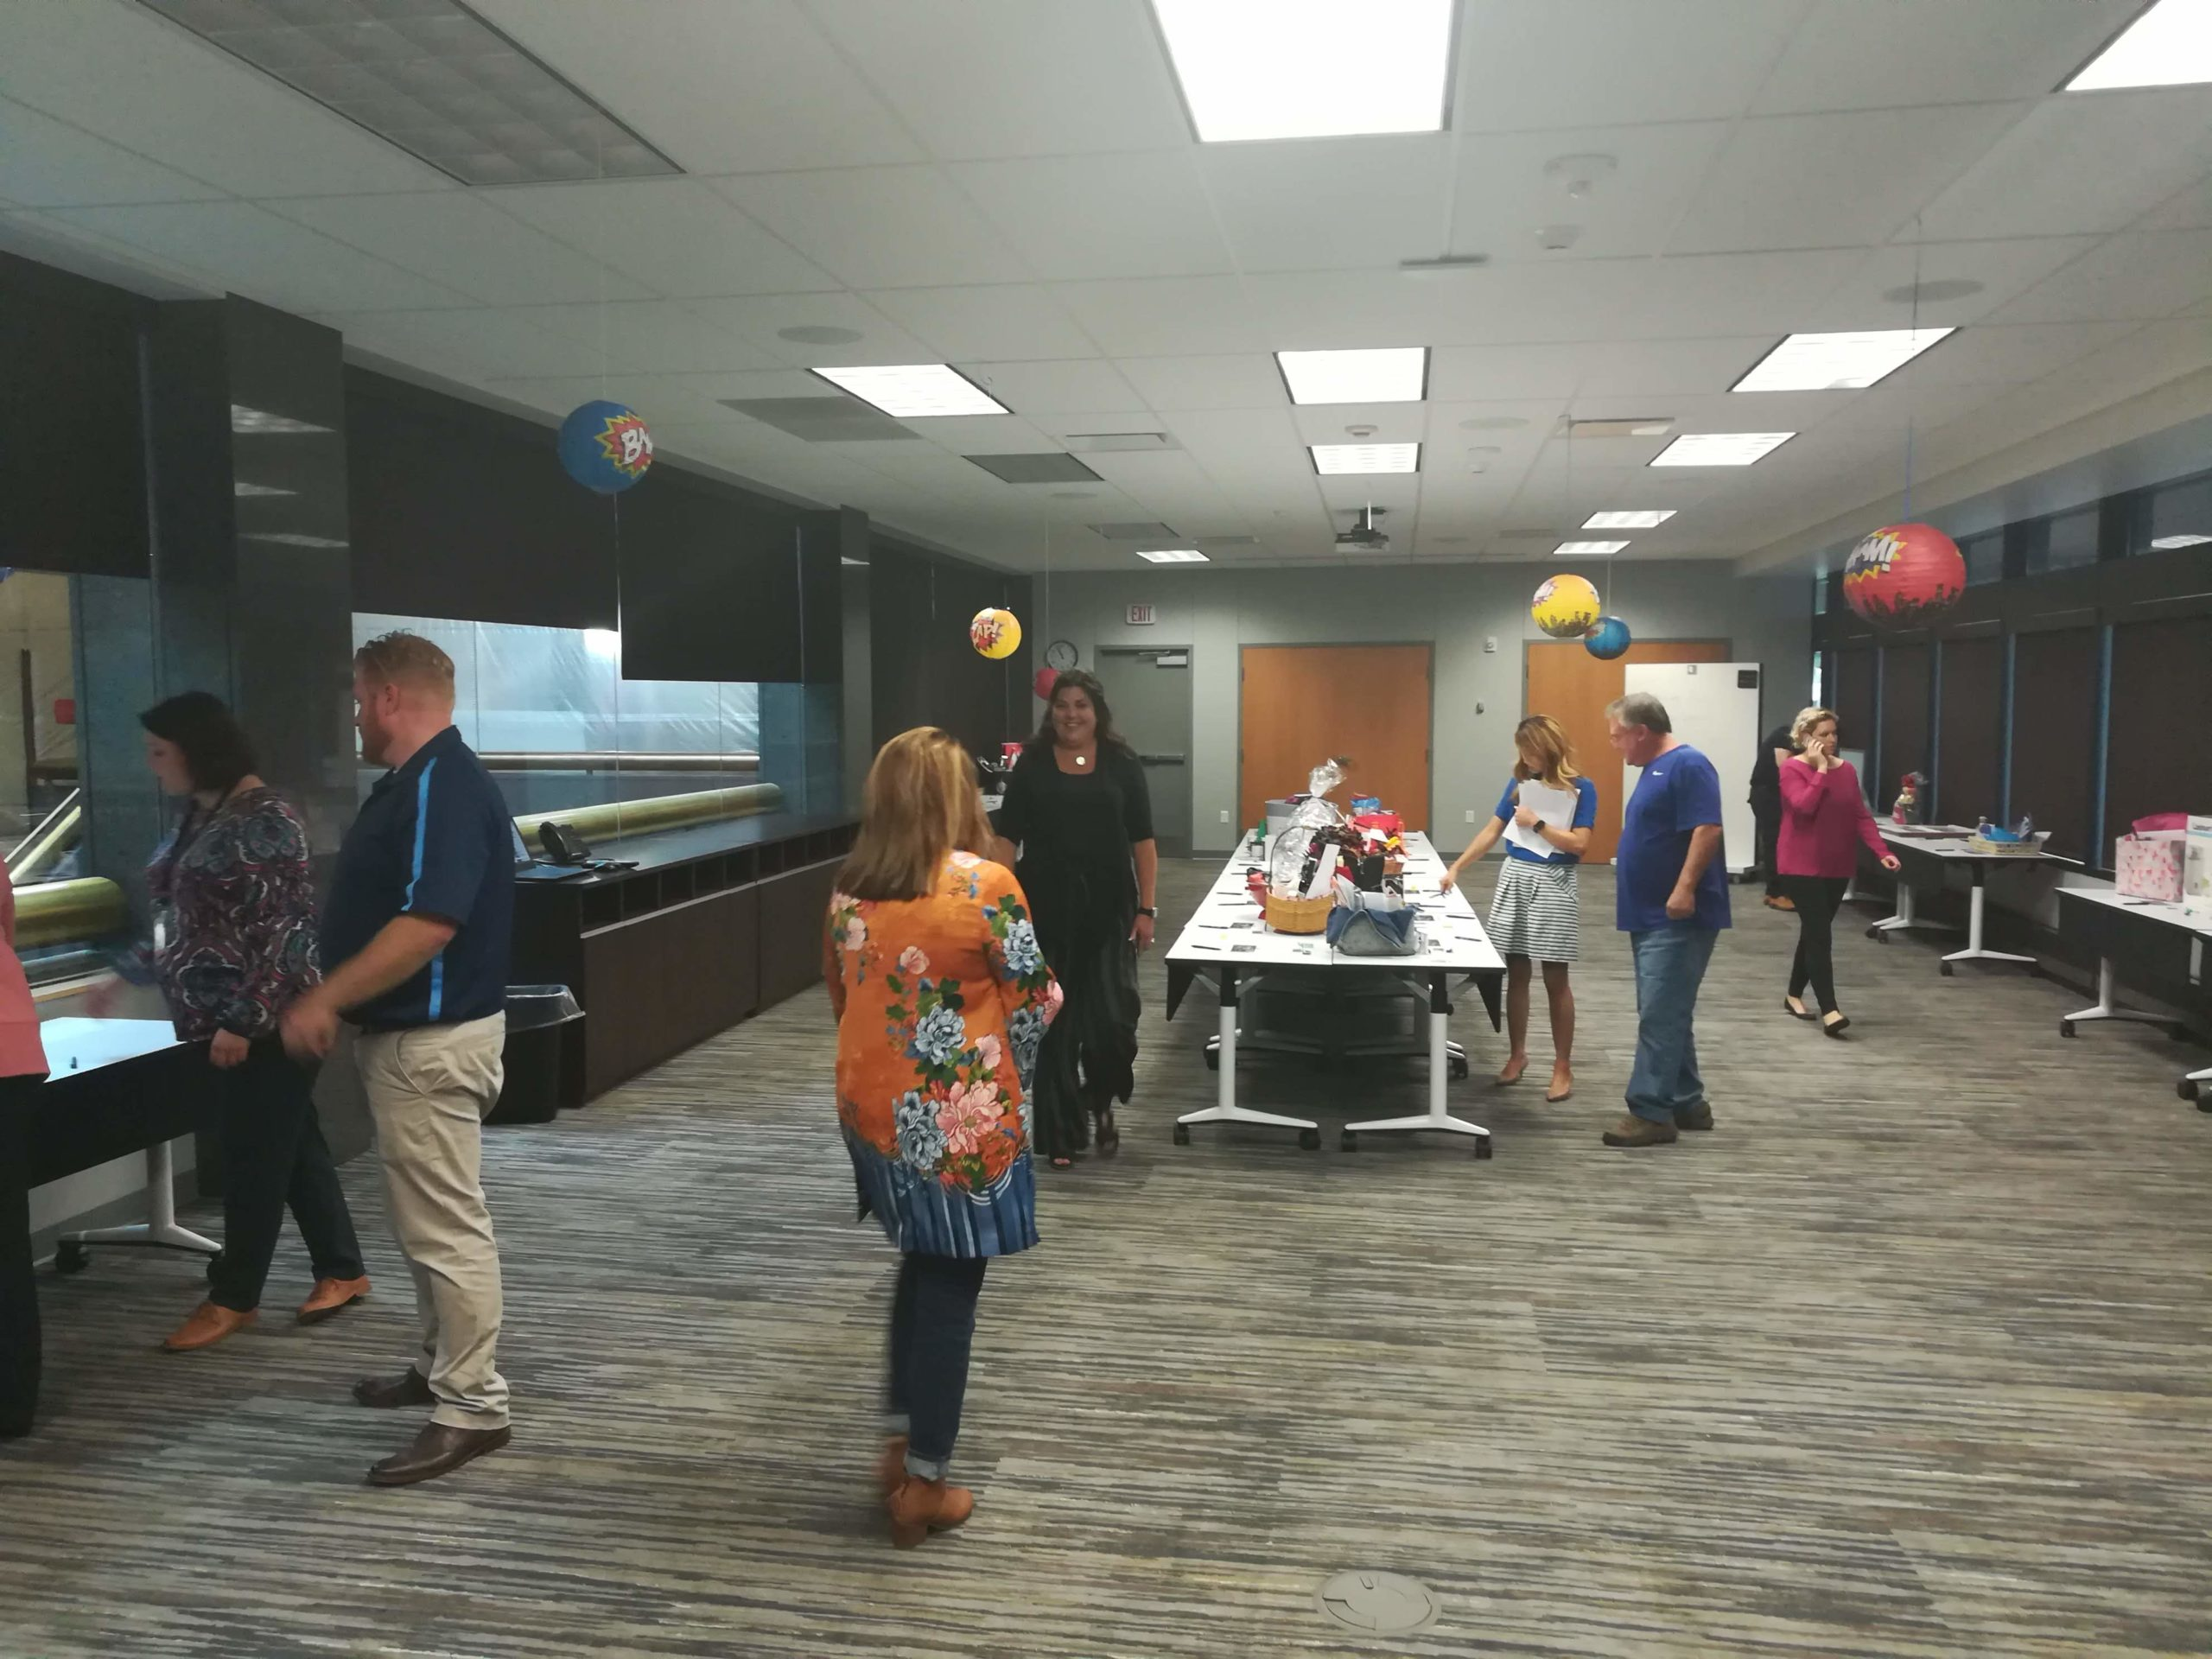 We had some pretty impressive offerings for our silent auction, including two flatscreen Mac desktop computers, tickets and VIP parking to a KC Royals game and a Huskers poster signed by Nebraska's very own superhero Scott Frost.